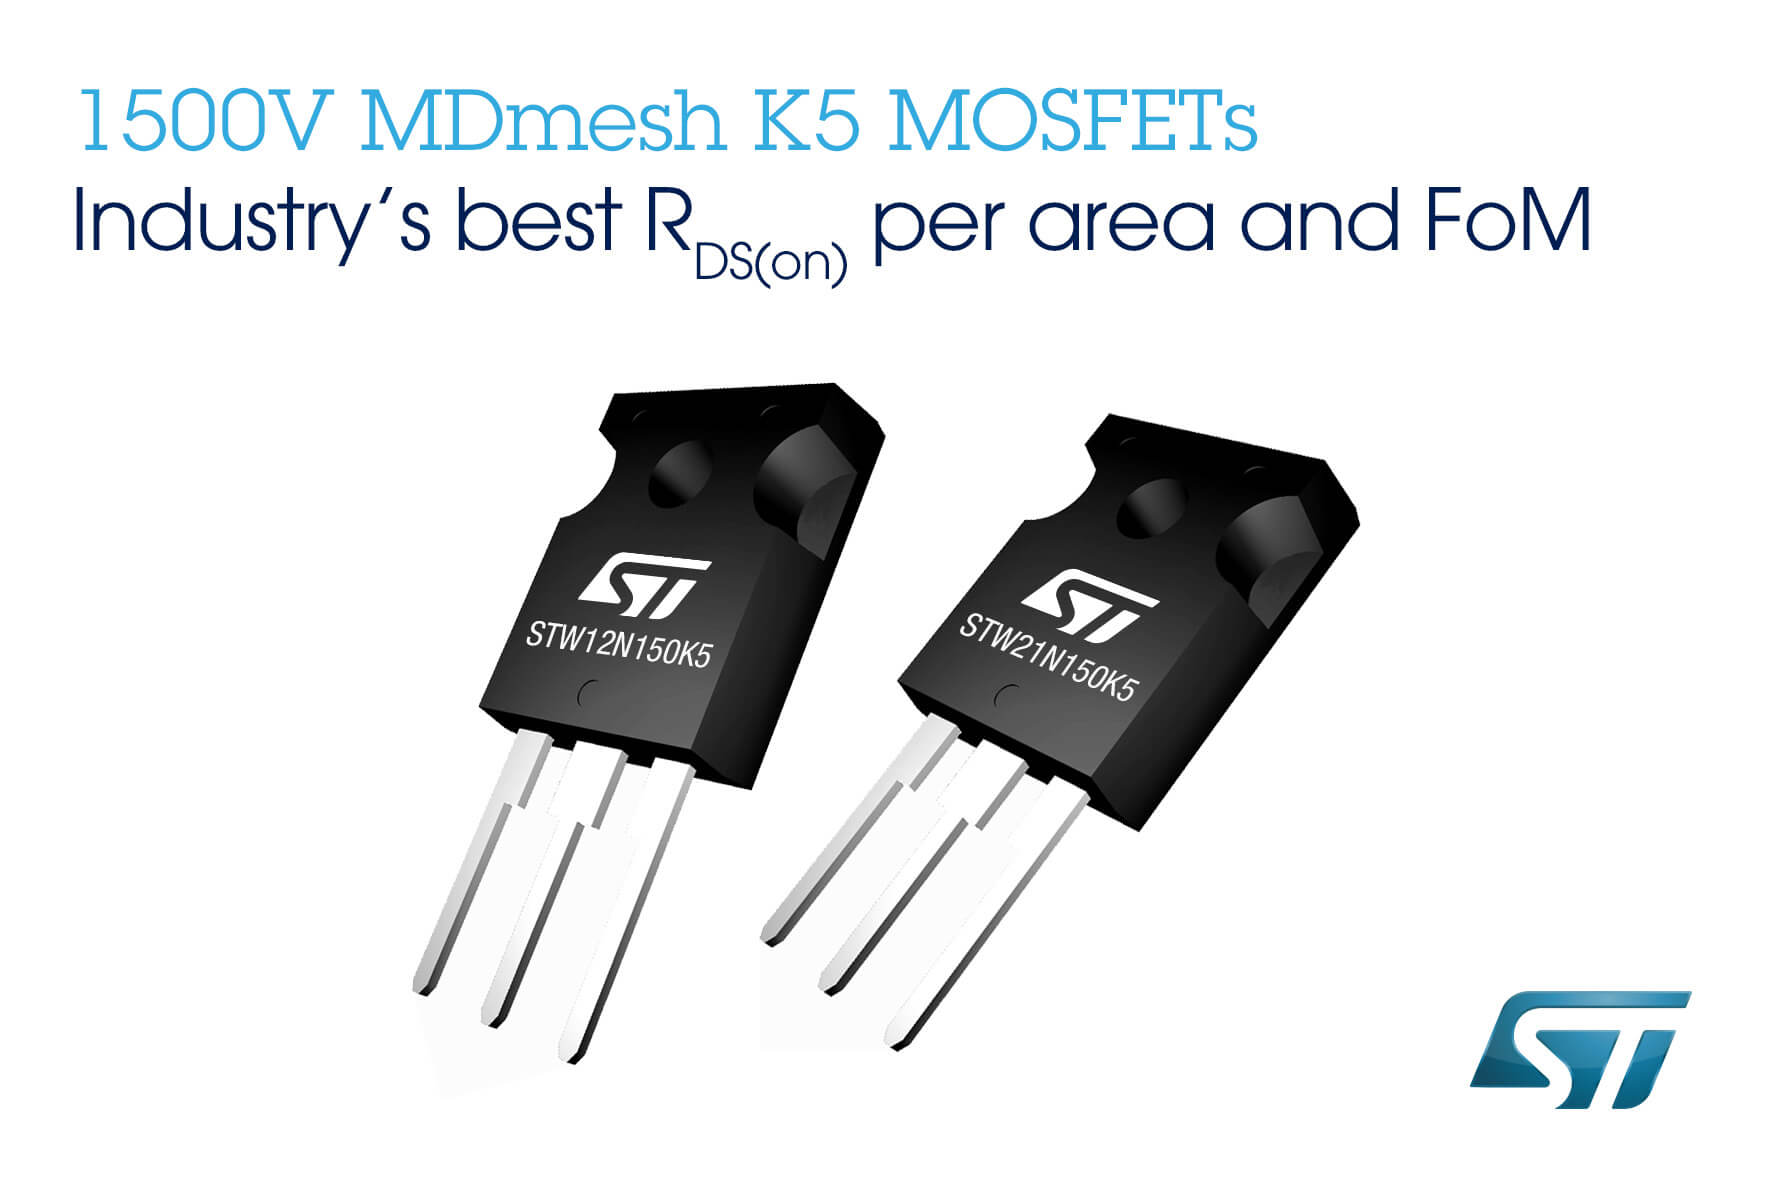 1500V super junction mosfet MDmesh Coolmos ST microelectronics